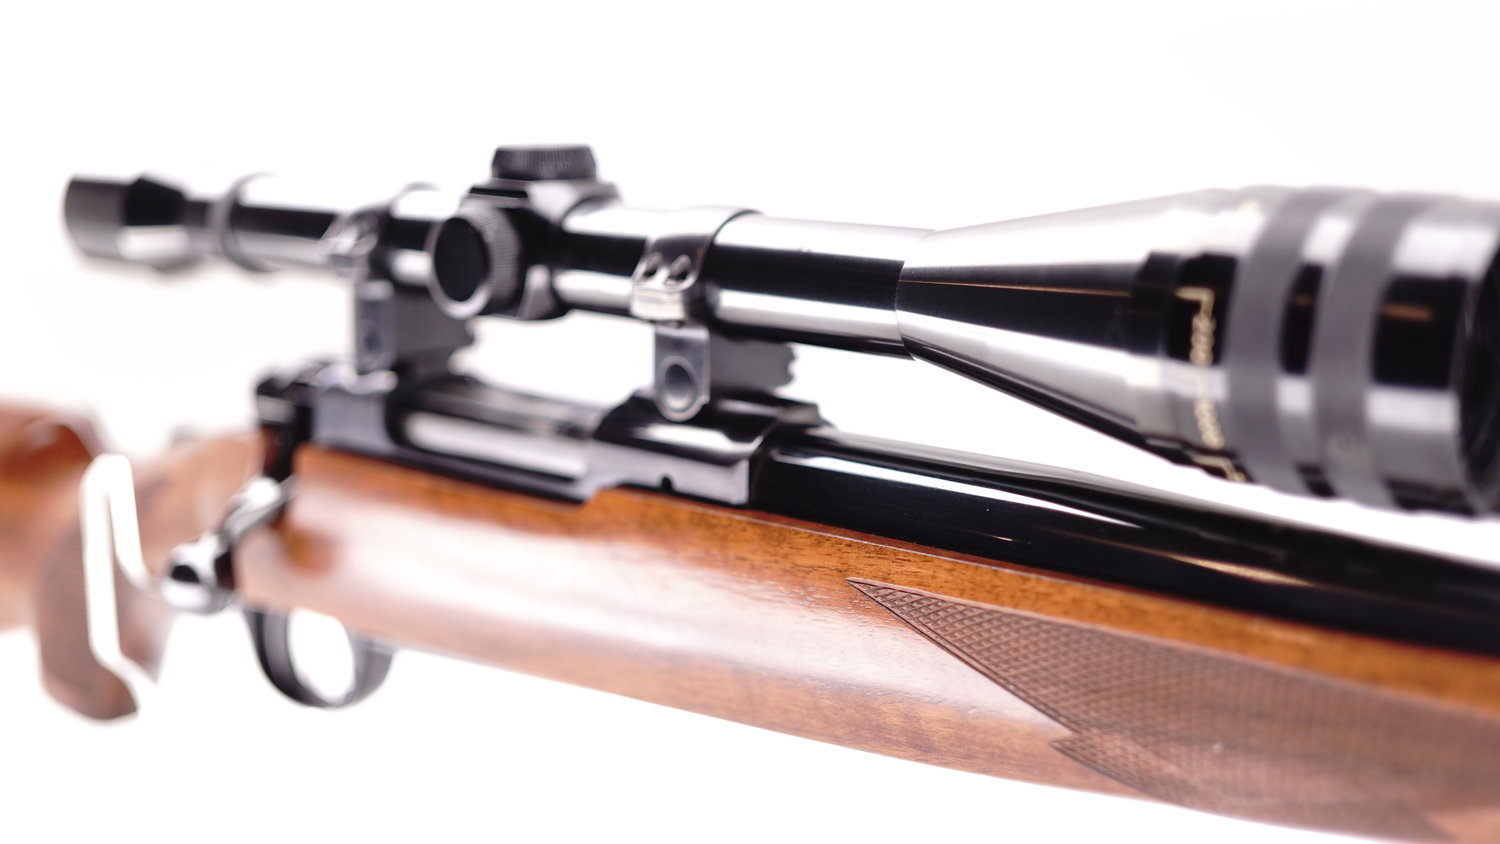 RUGER M77 IN 22-250 WITH WEAVER K12 MICRO TRAC.